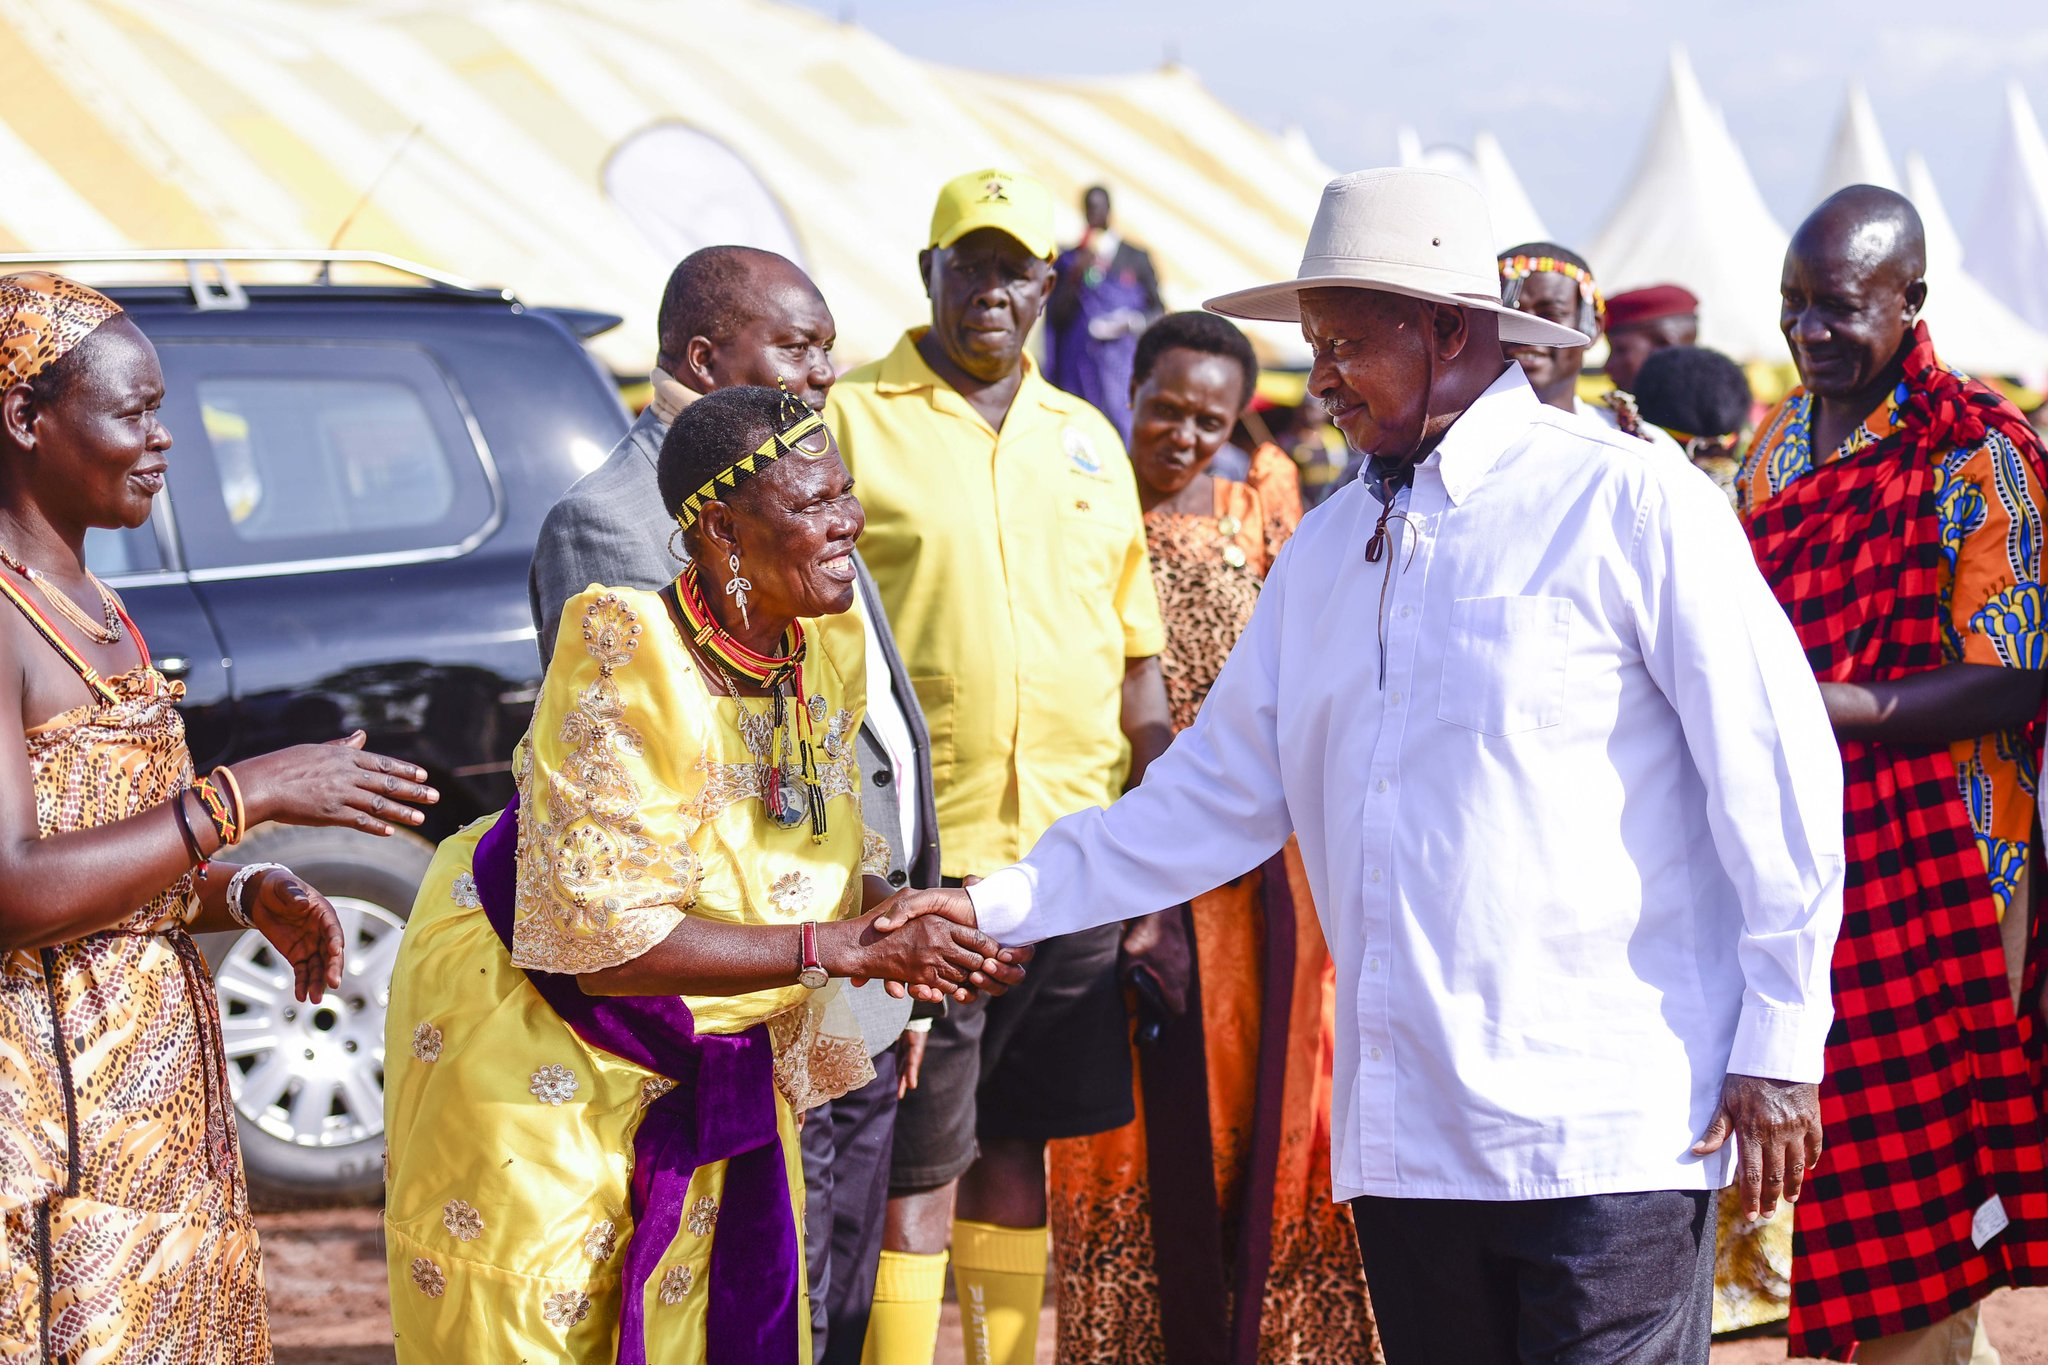 President Yoweri Museveni is welcomed at the Itesot cultural celebrations in Kumi district.